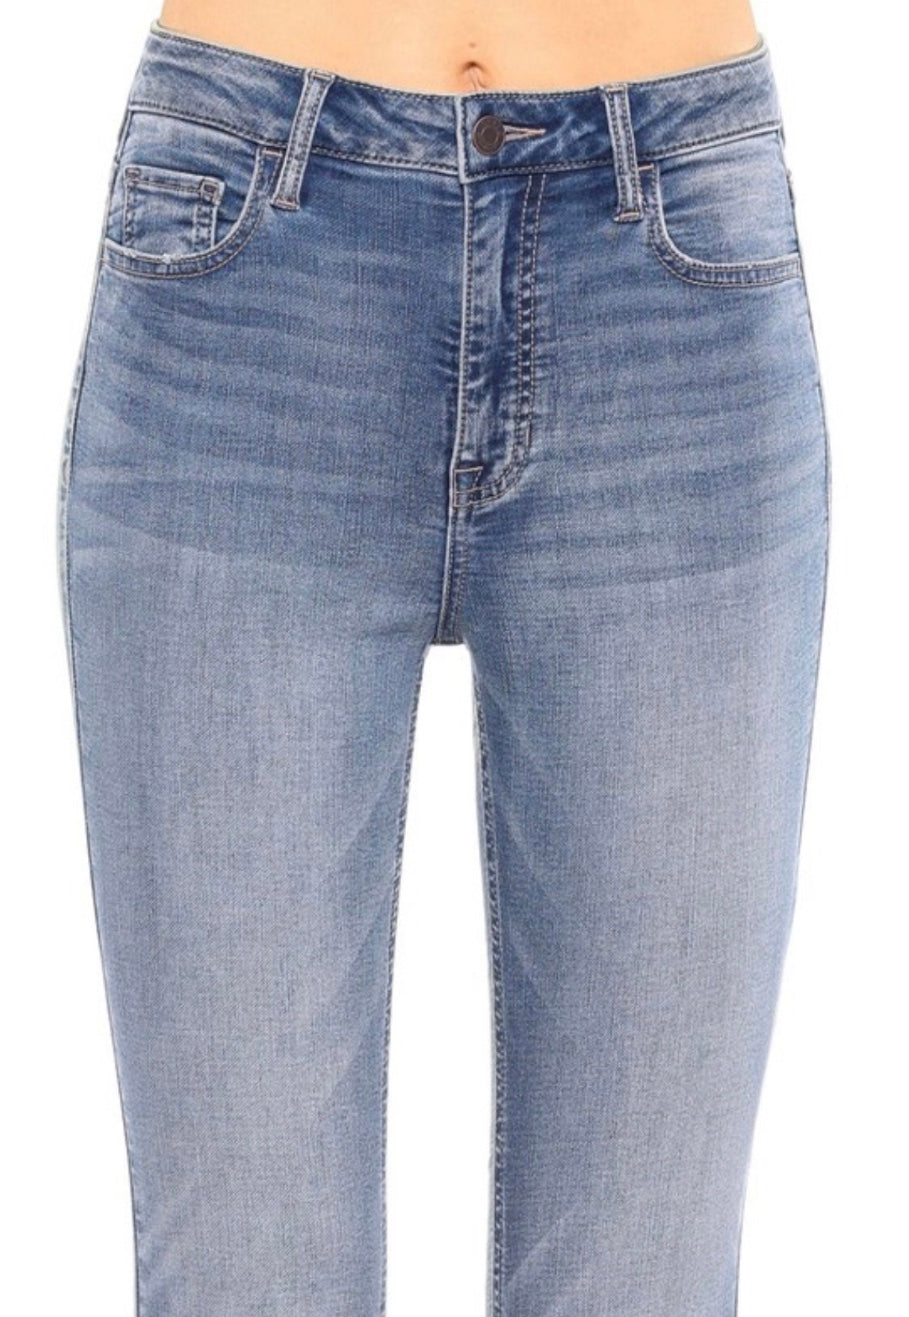 21900062 JEANS